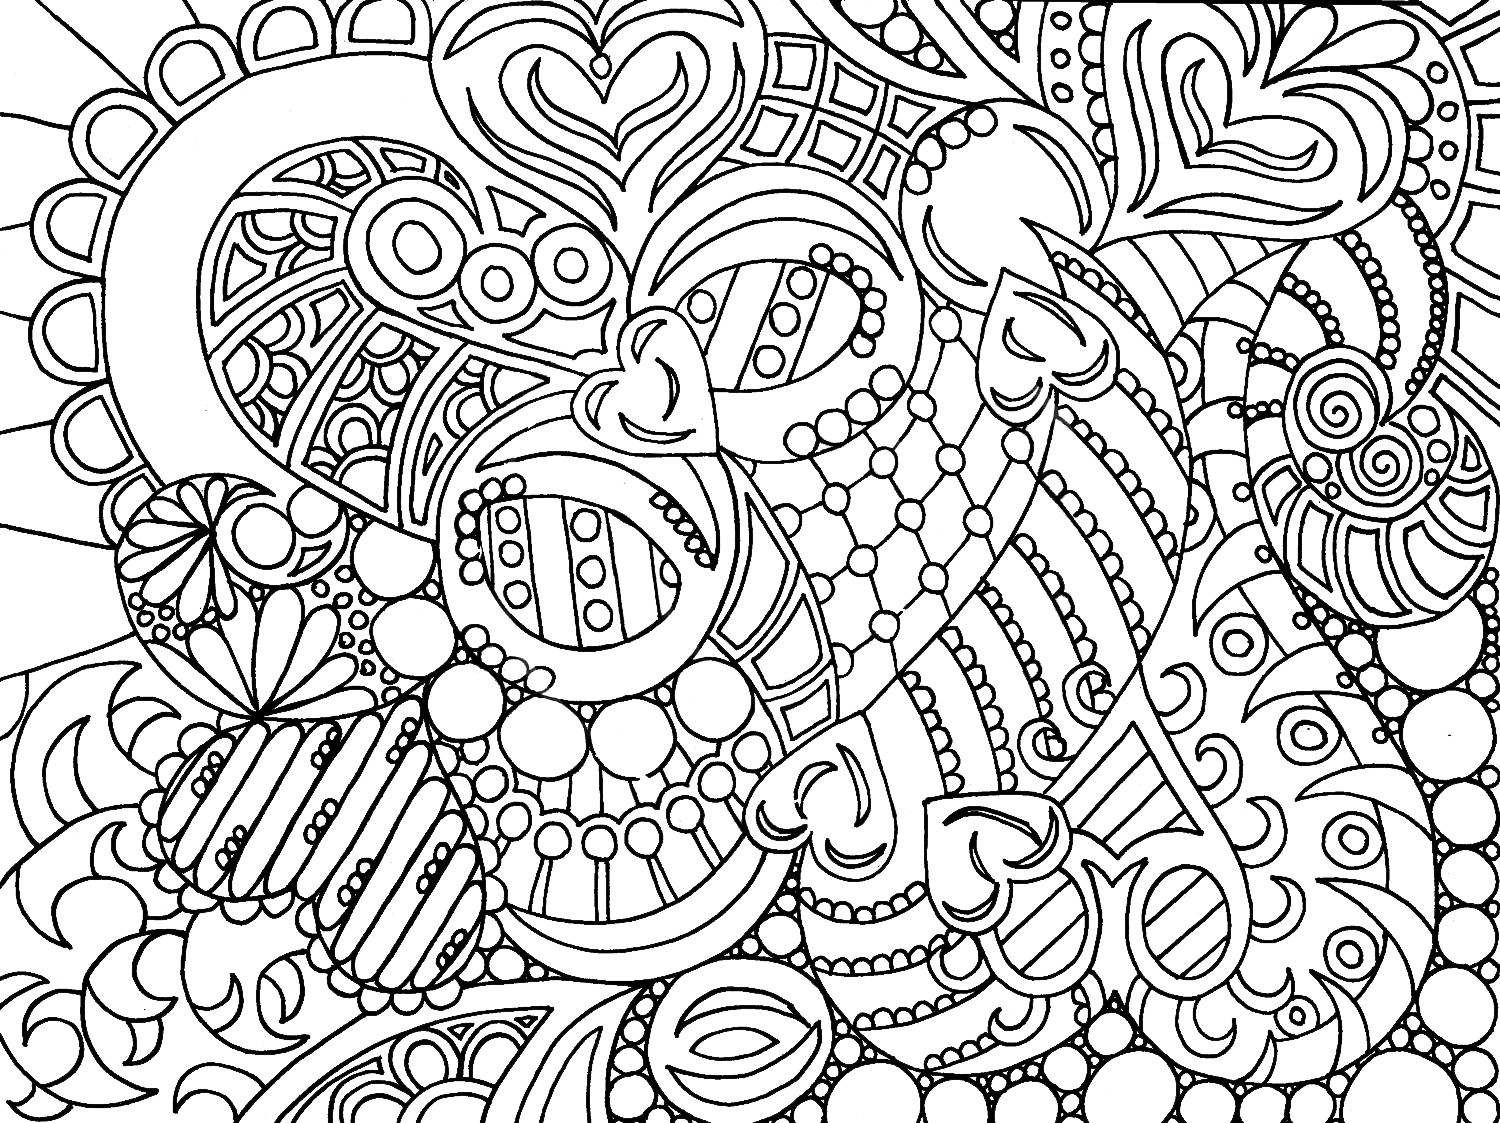 Free Coloring Sheets Adults  free coloring pages for adults